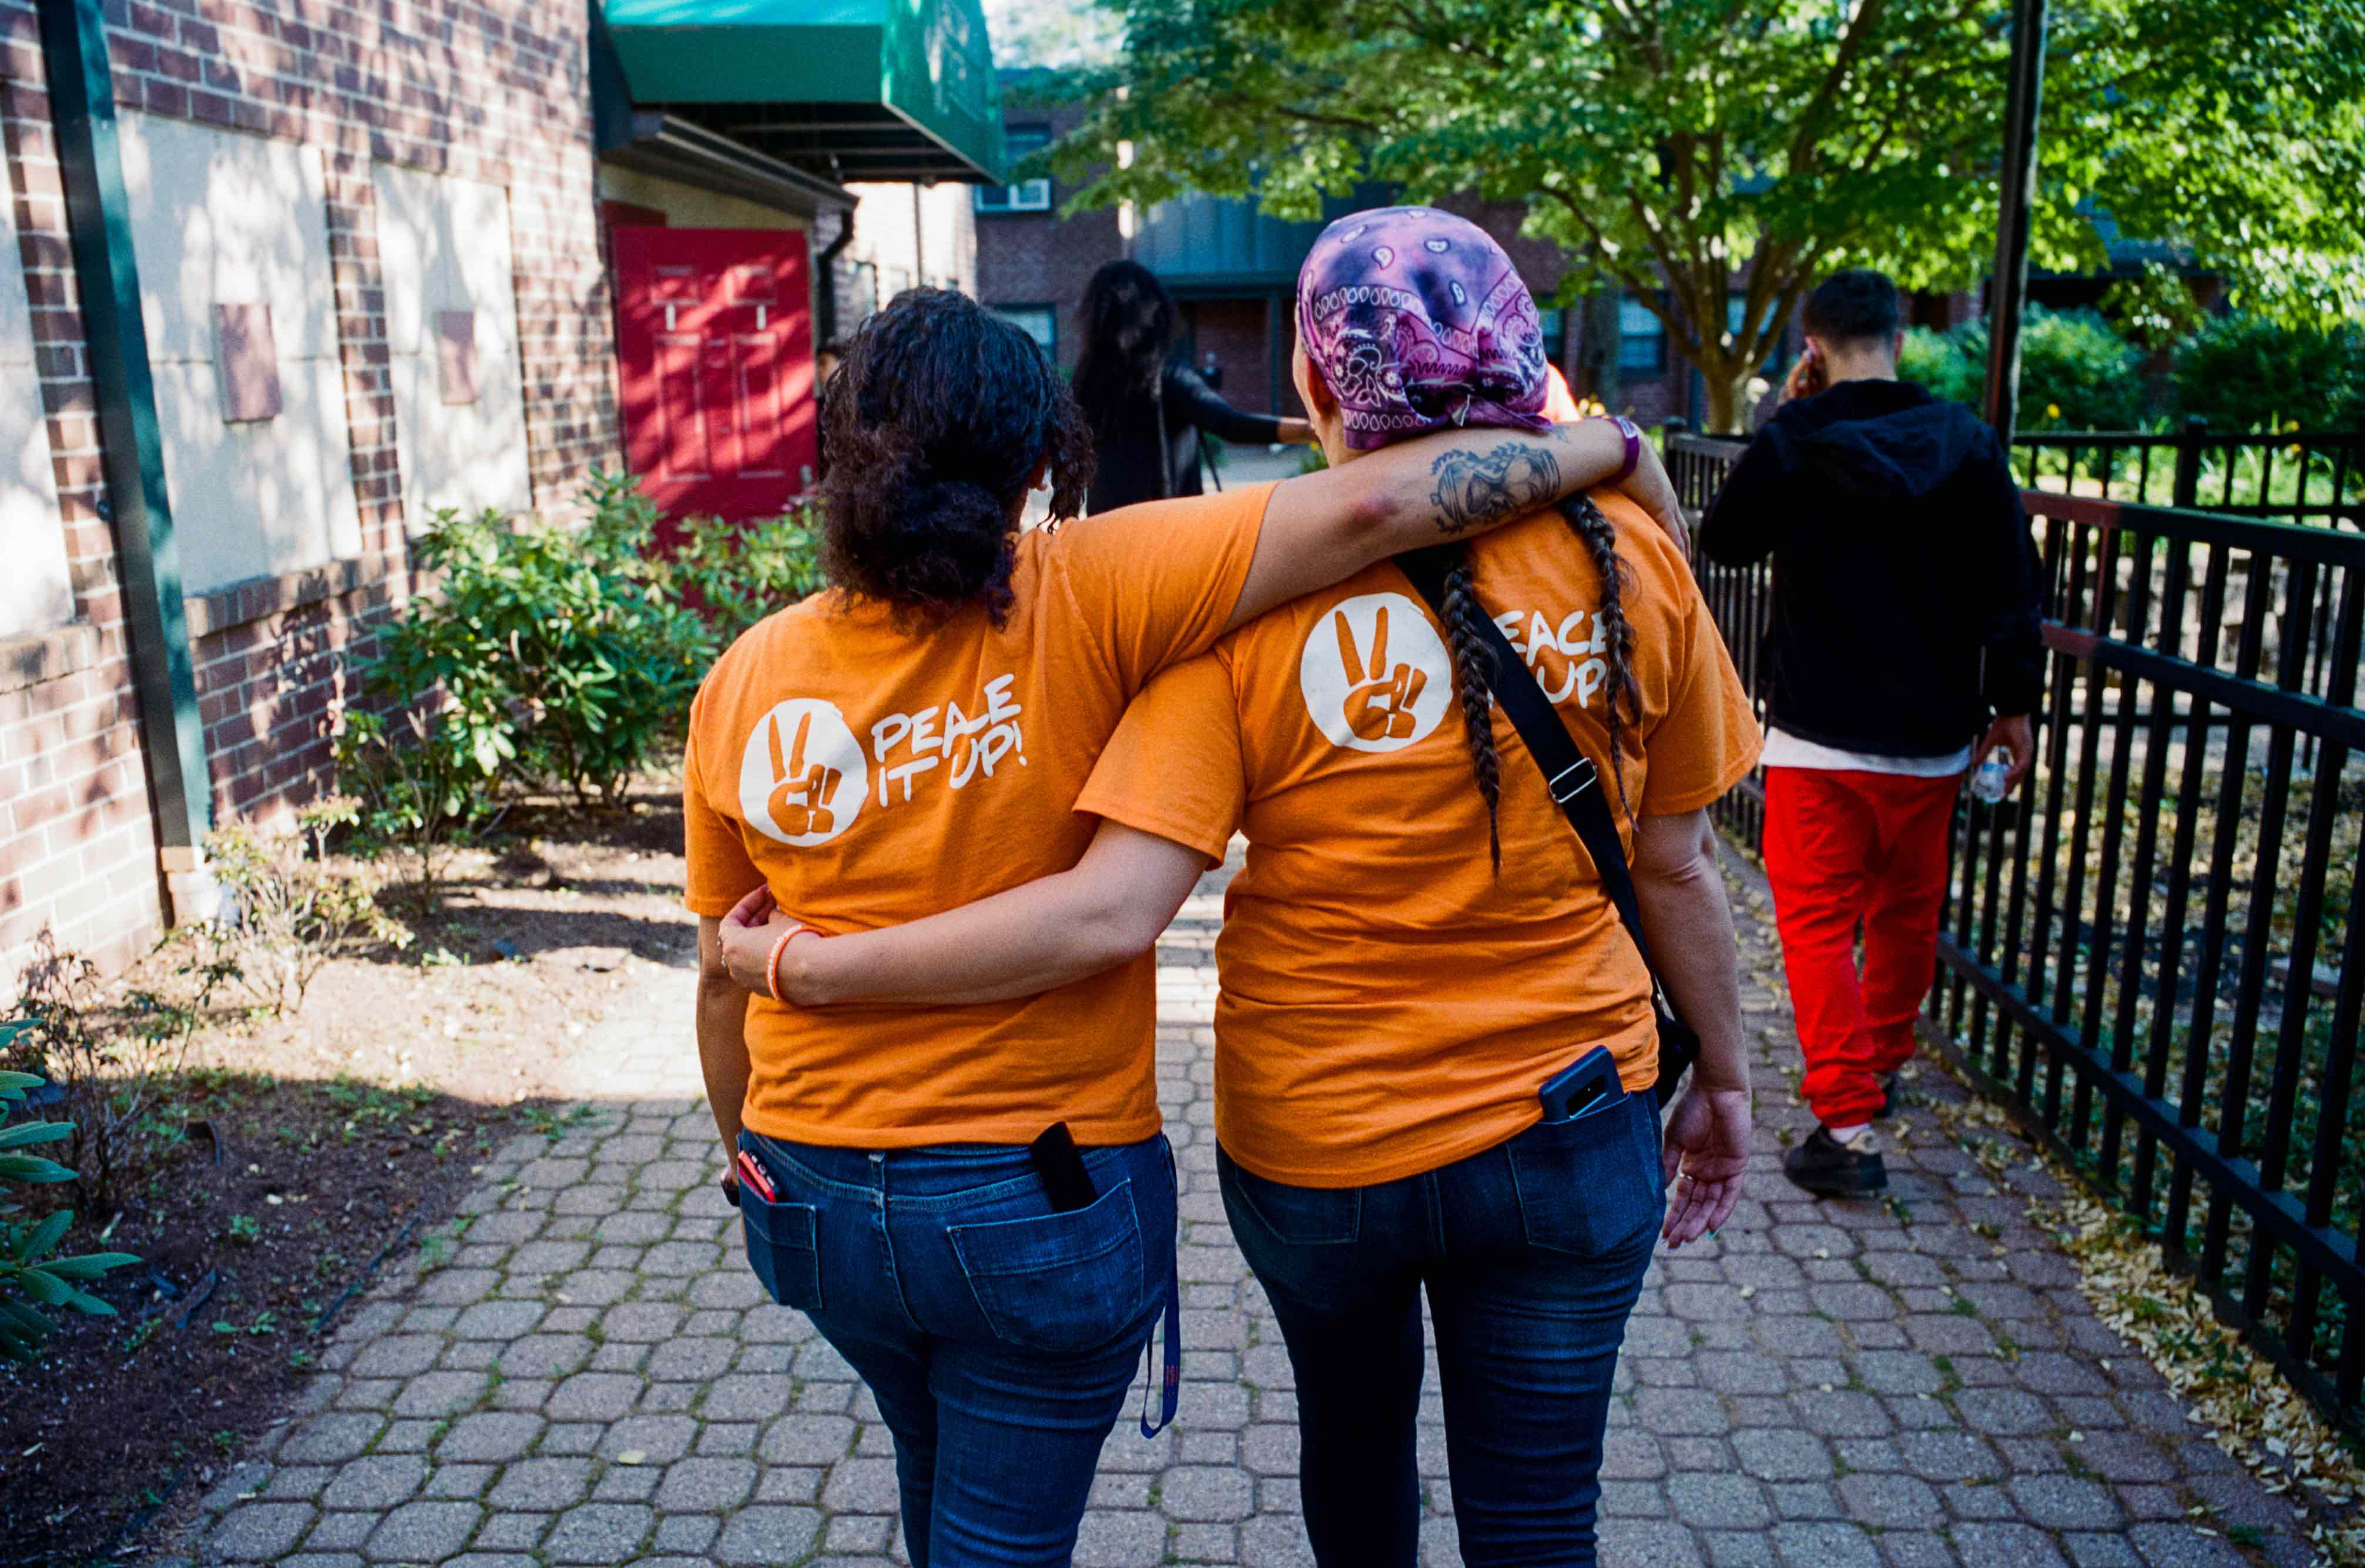 Two women with their backs to the camera embracing